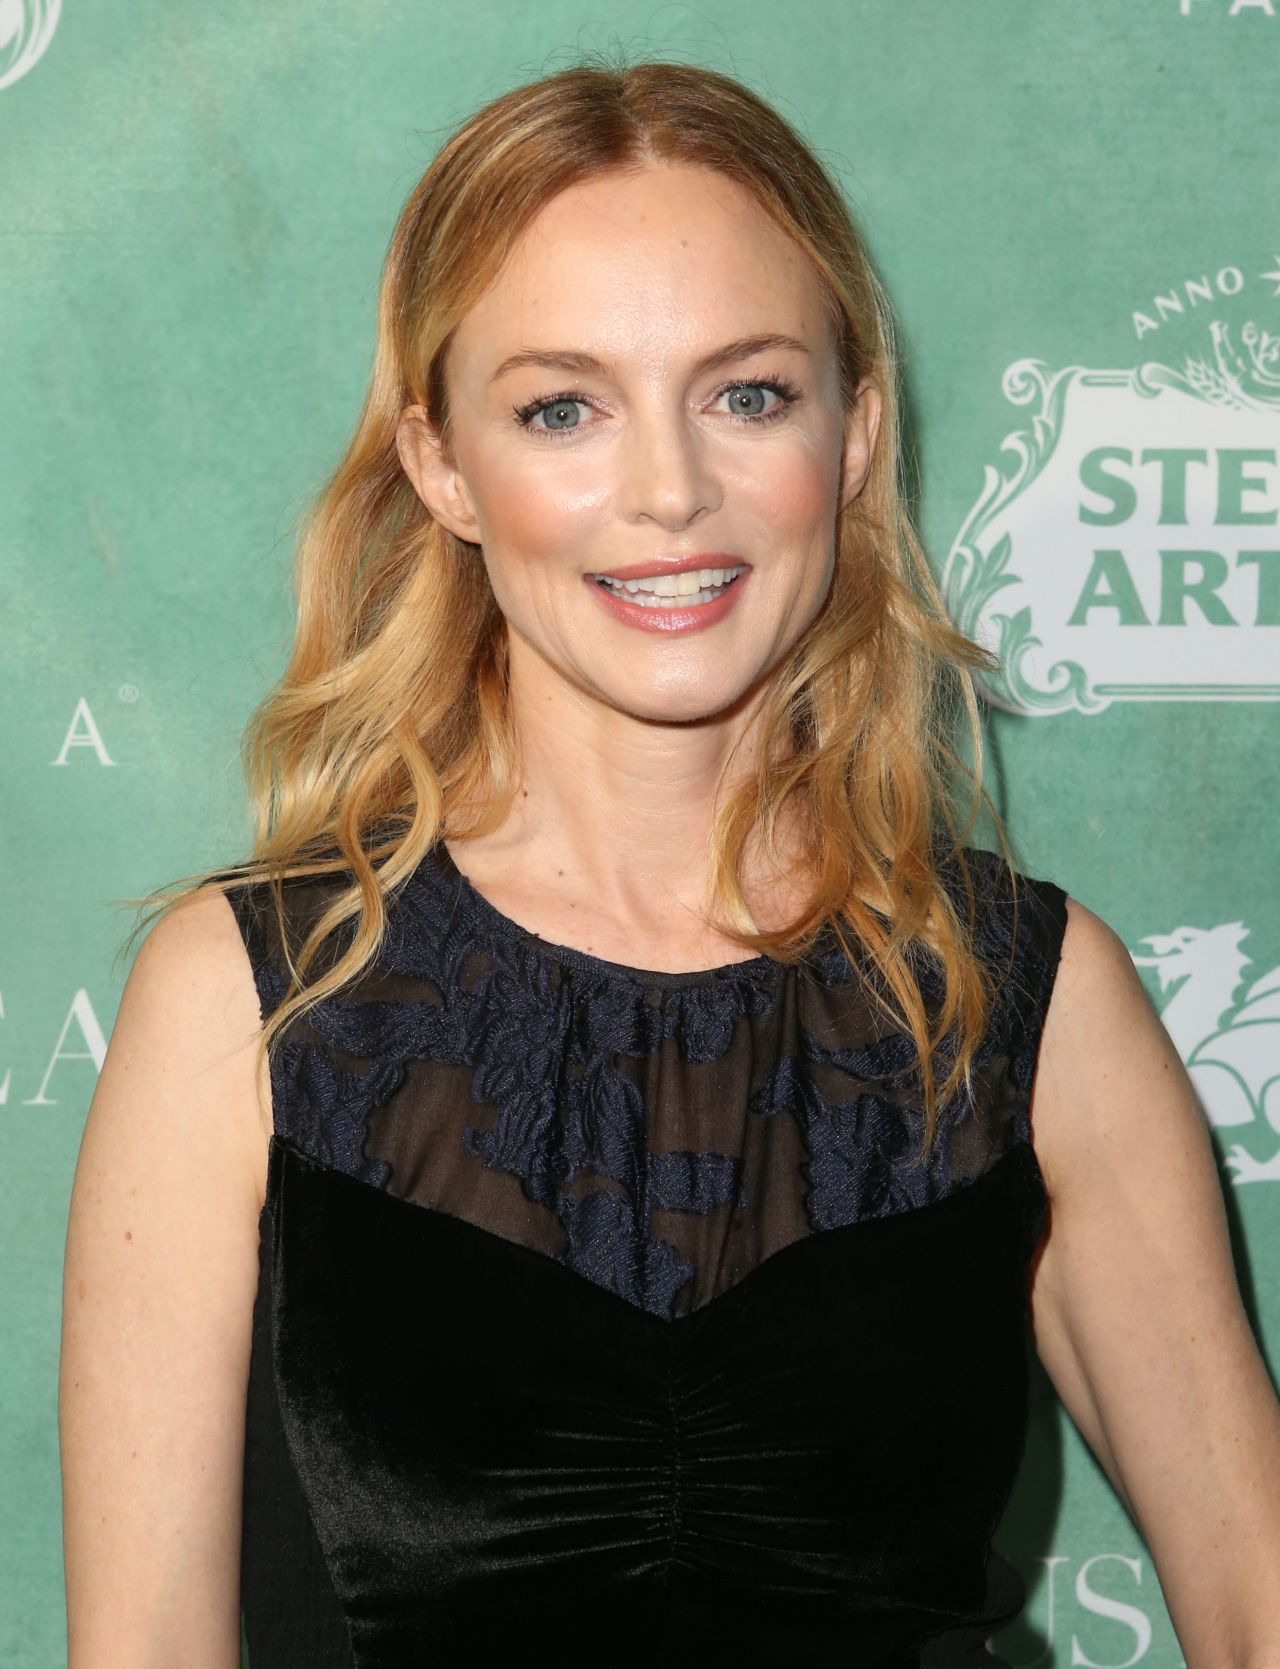 In gallery heather graham picture